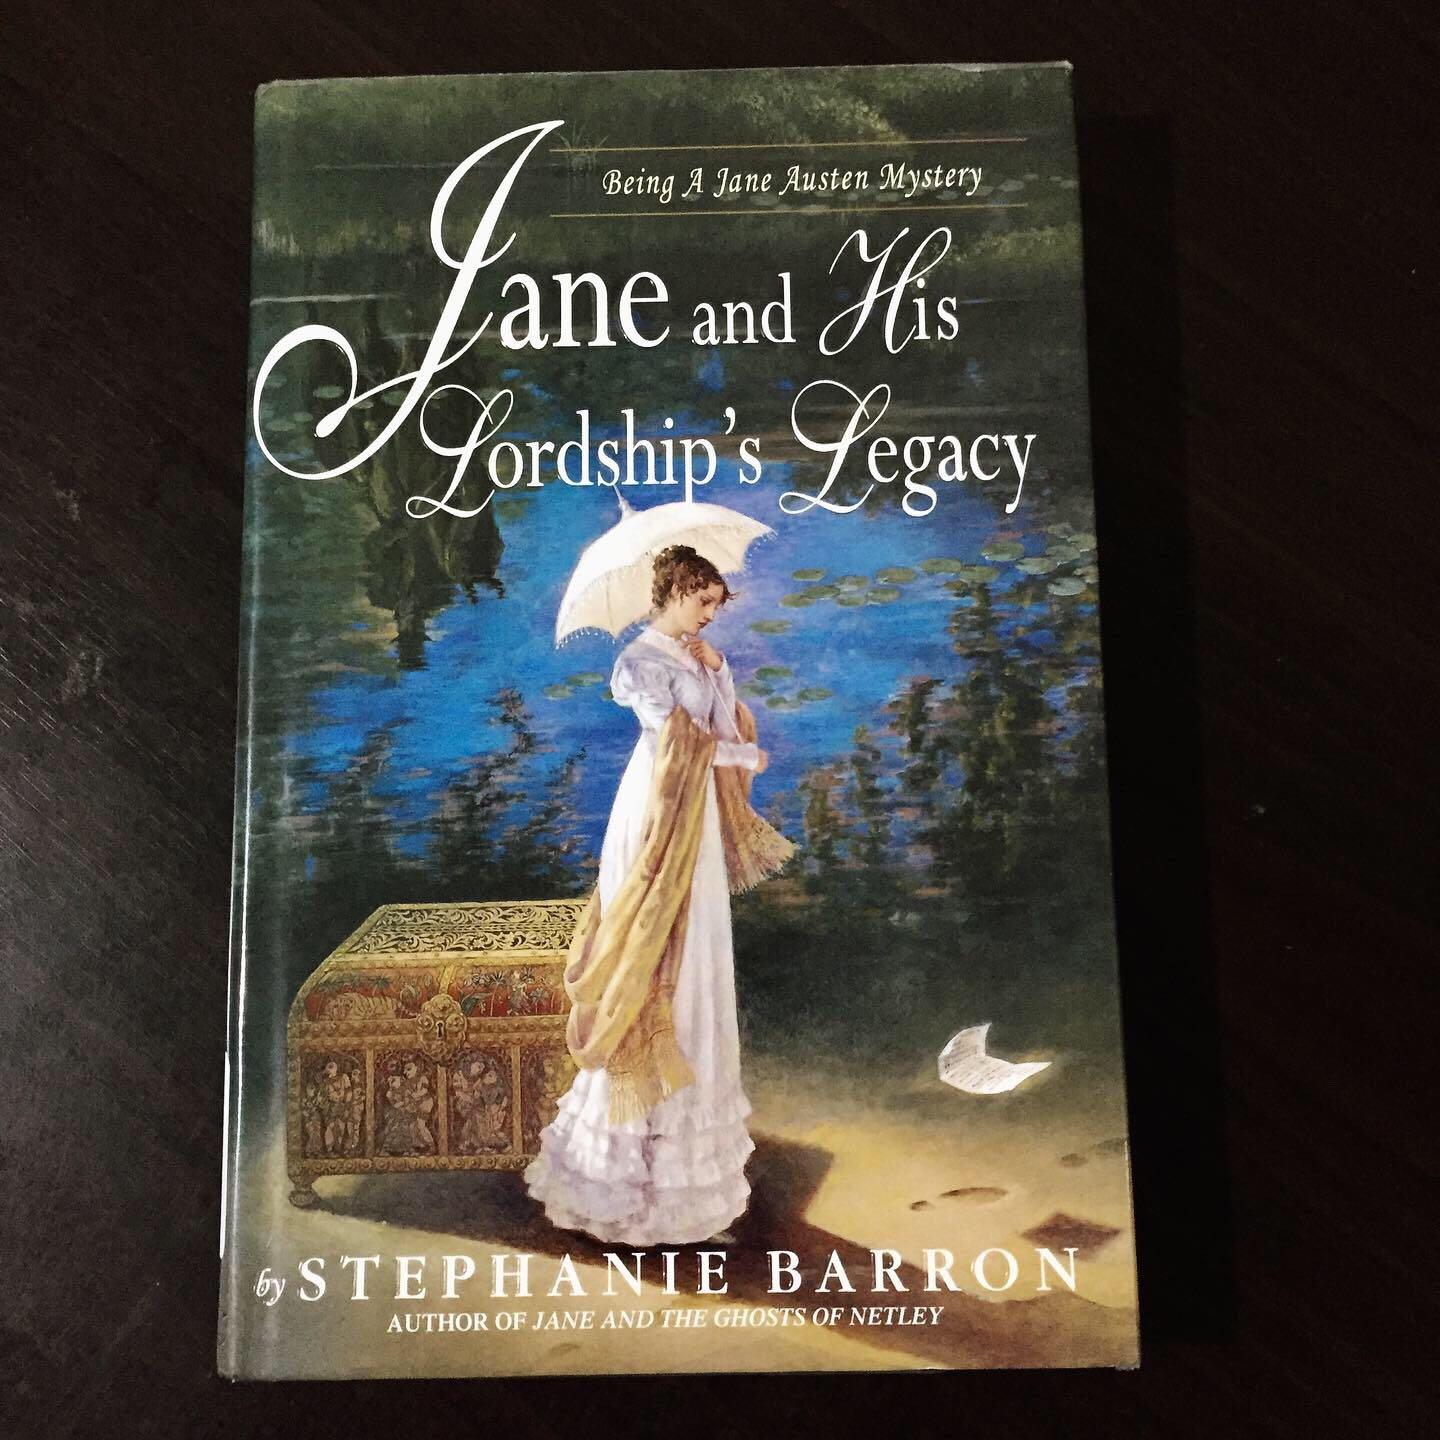 Jane and His Lordship's Legacy by Stephanie Barron (Jane Austen Mystery)